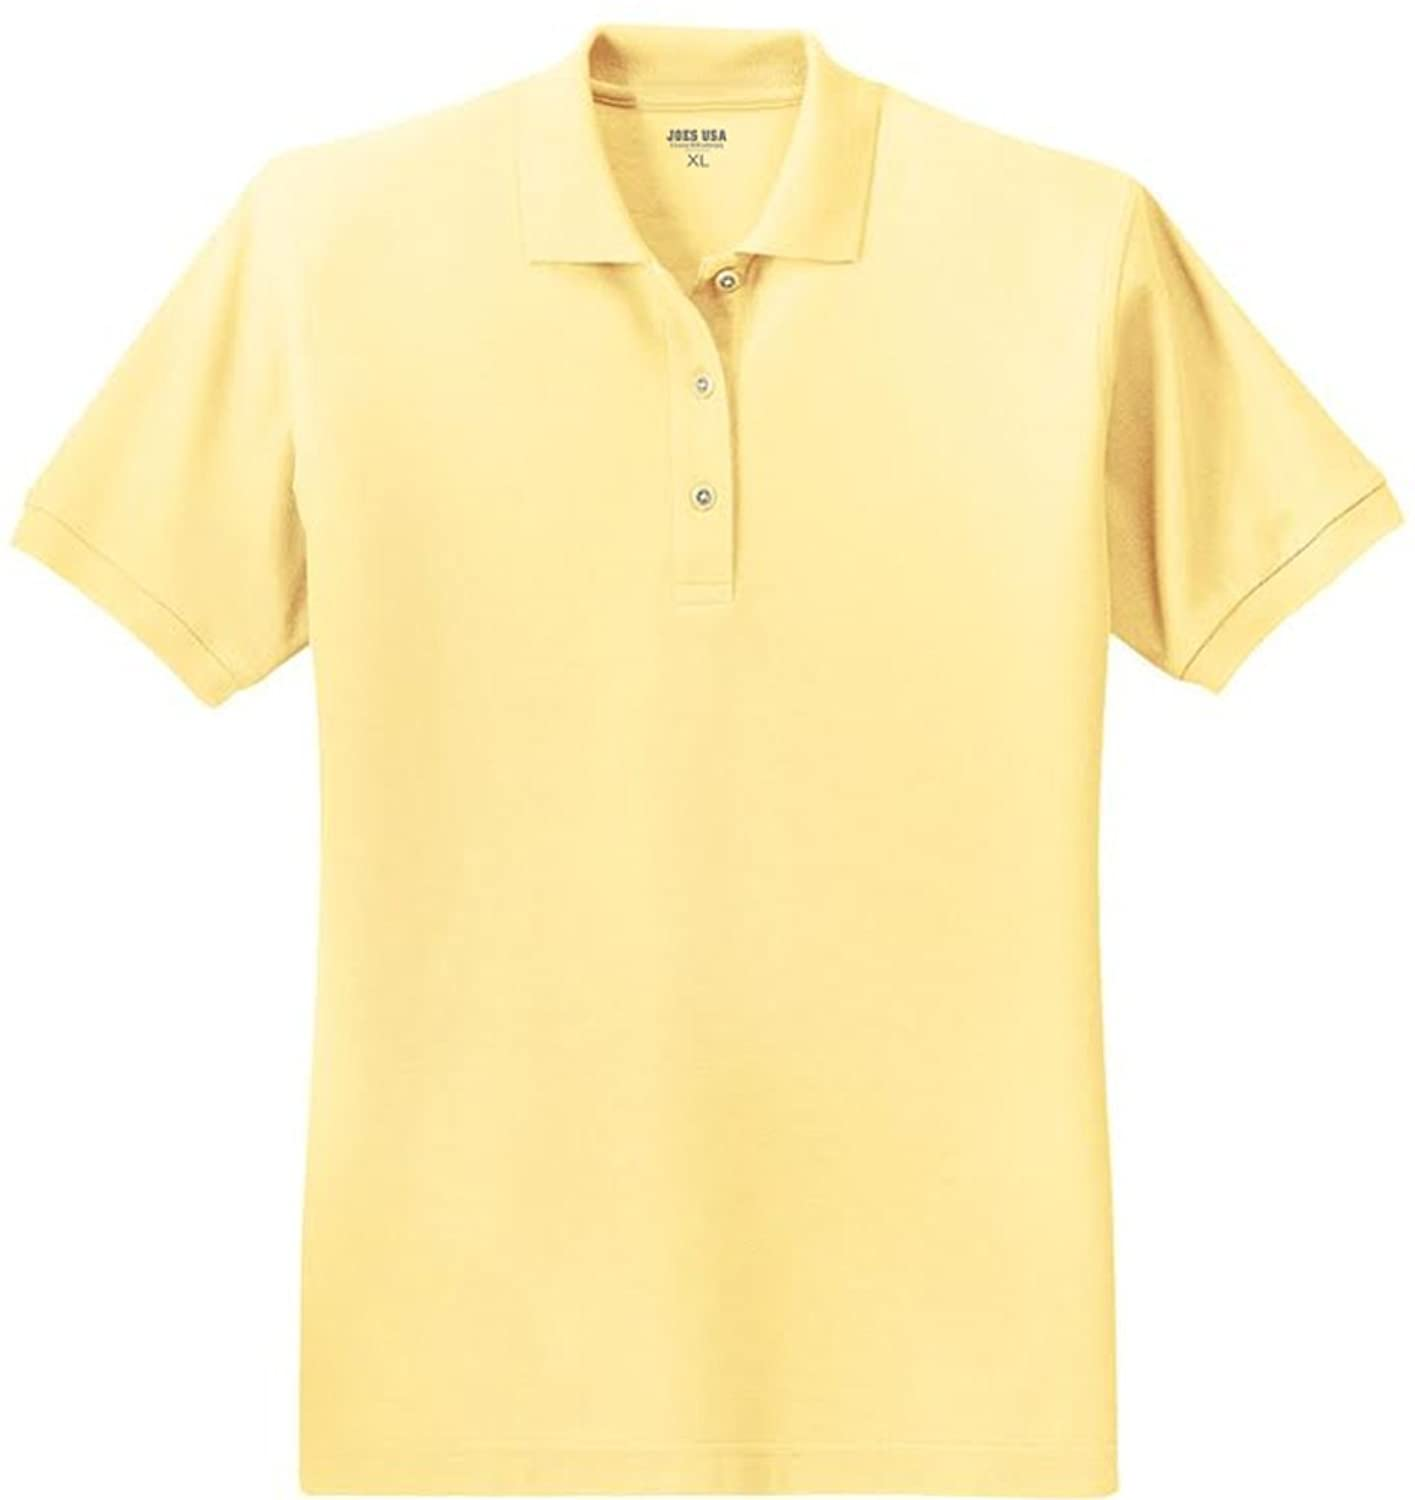 8af766cb81d Joe s USA - Ladies Short Sleeve Polo Shirts in 36 Colors and Sizes XS -  6XL. with built-to-last tailoring and fashion detailing. Superior wrinkle  and shrink ...